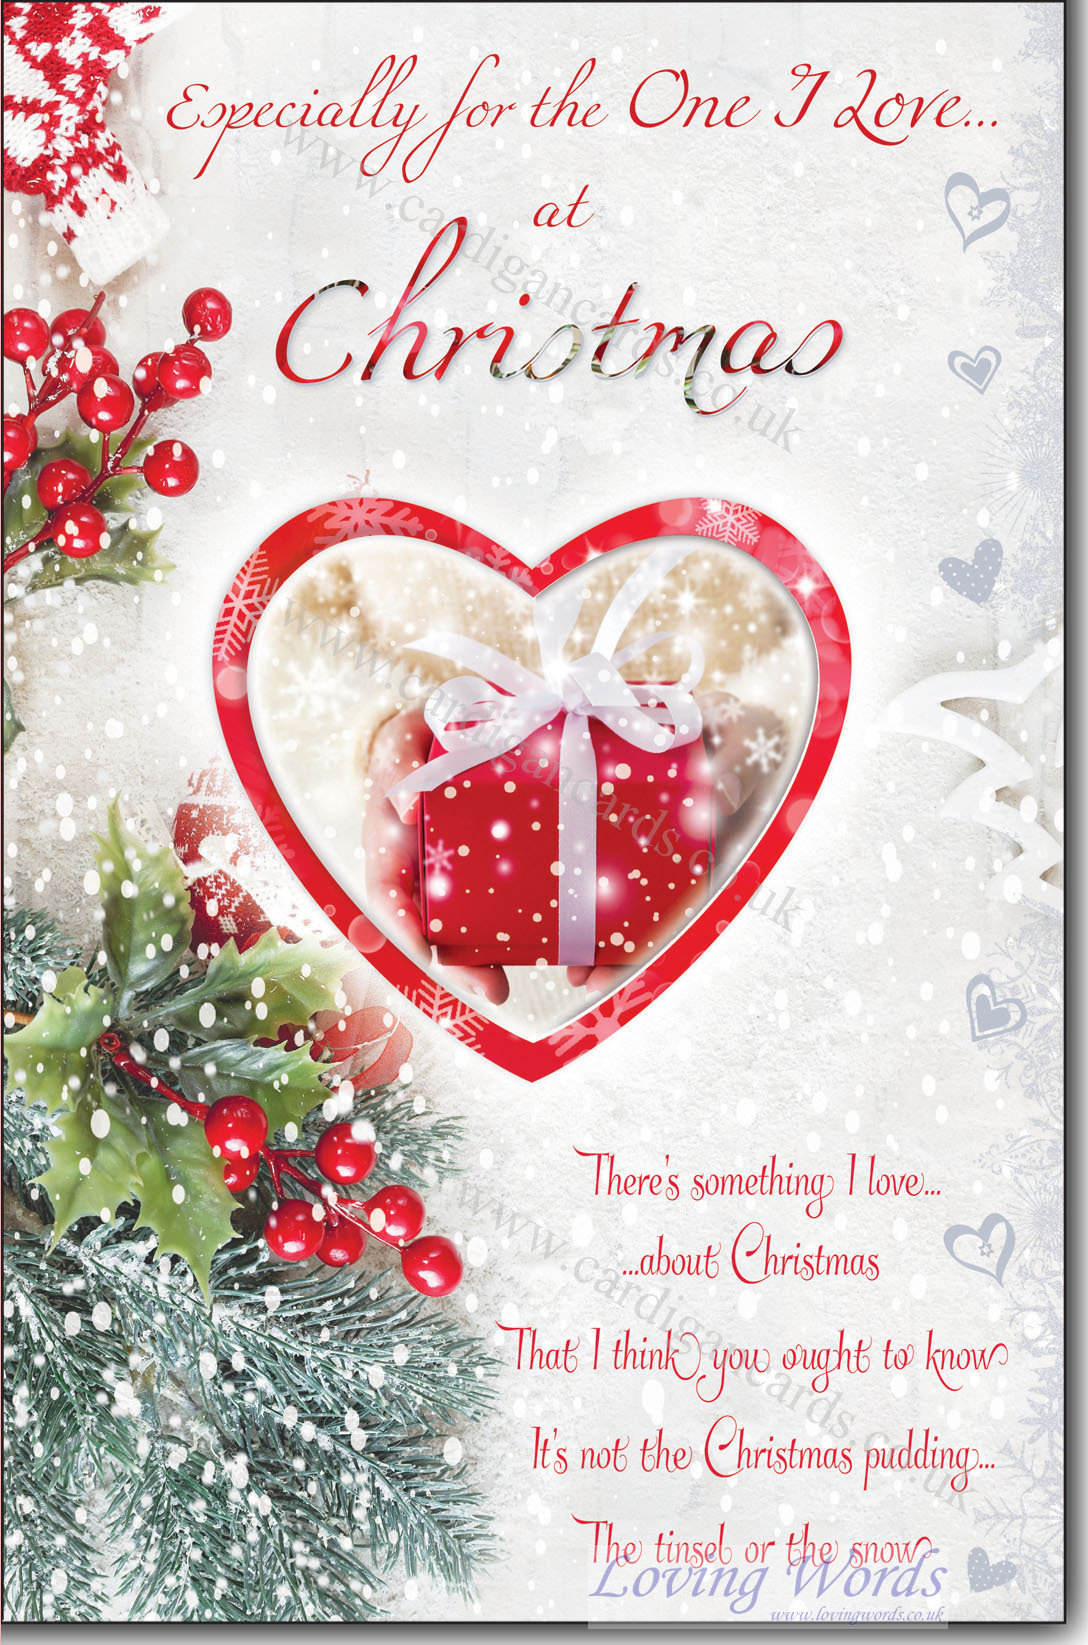 One I Love Christmas | Greeting Cards by Loving Words